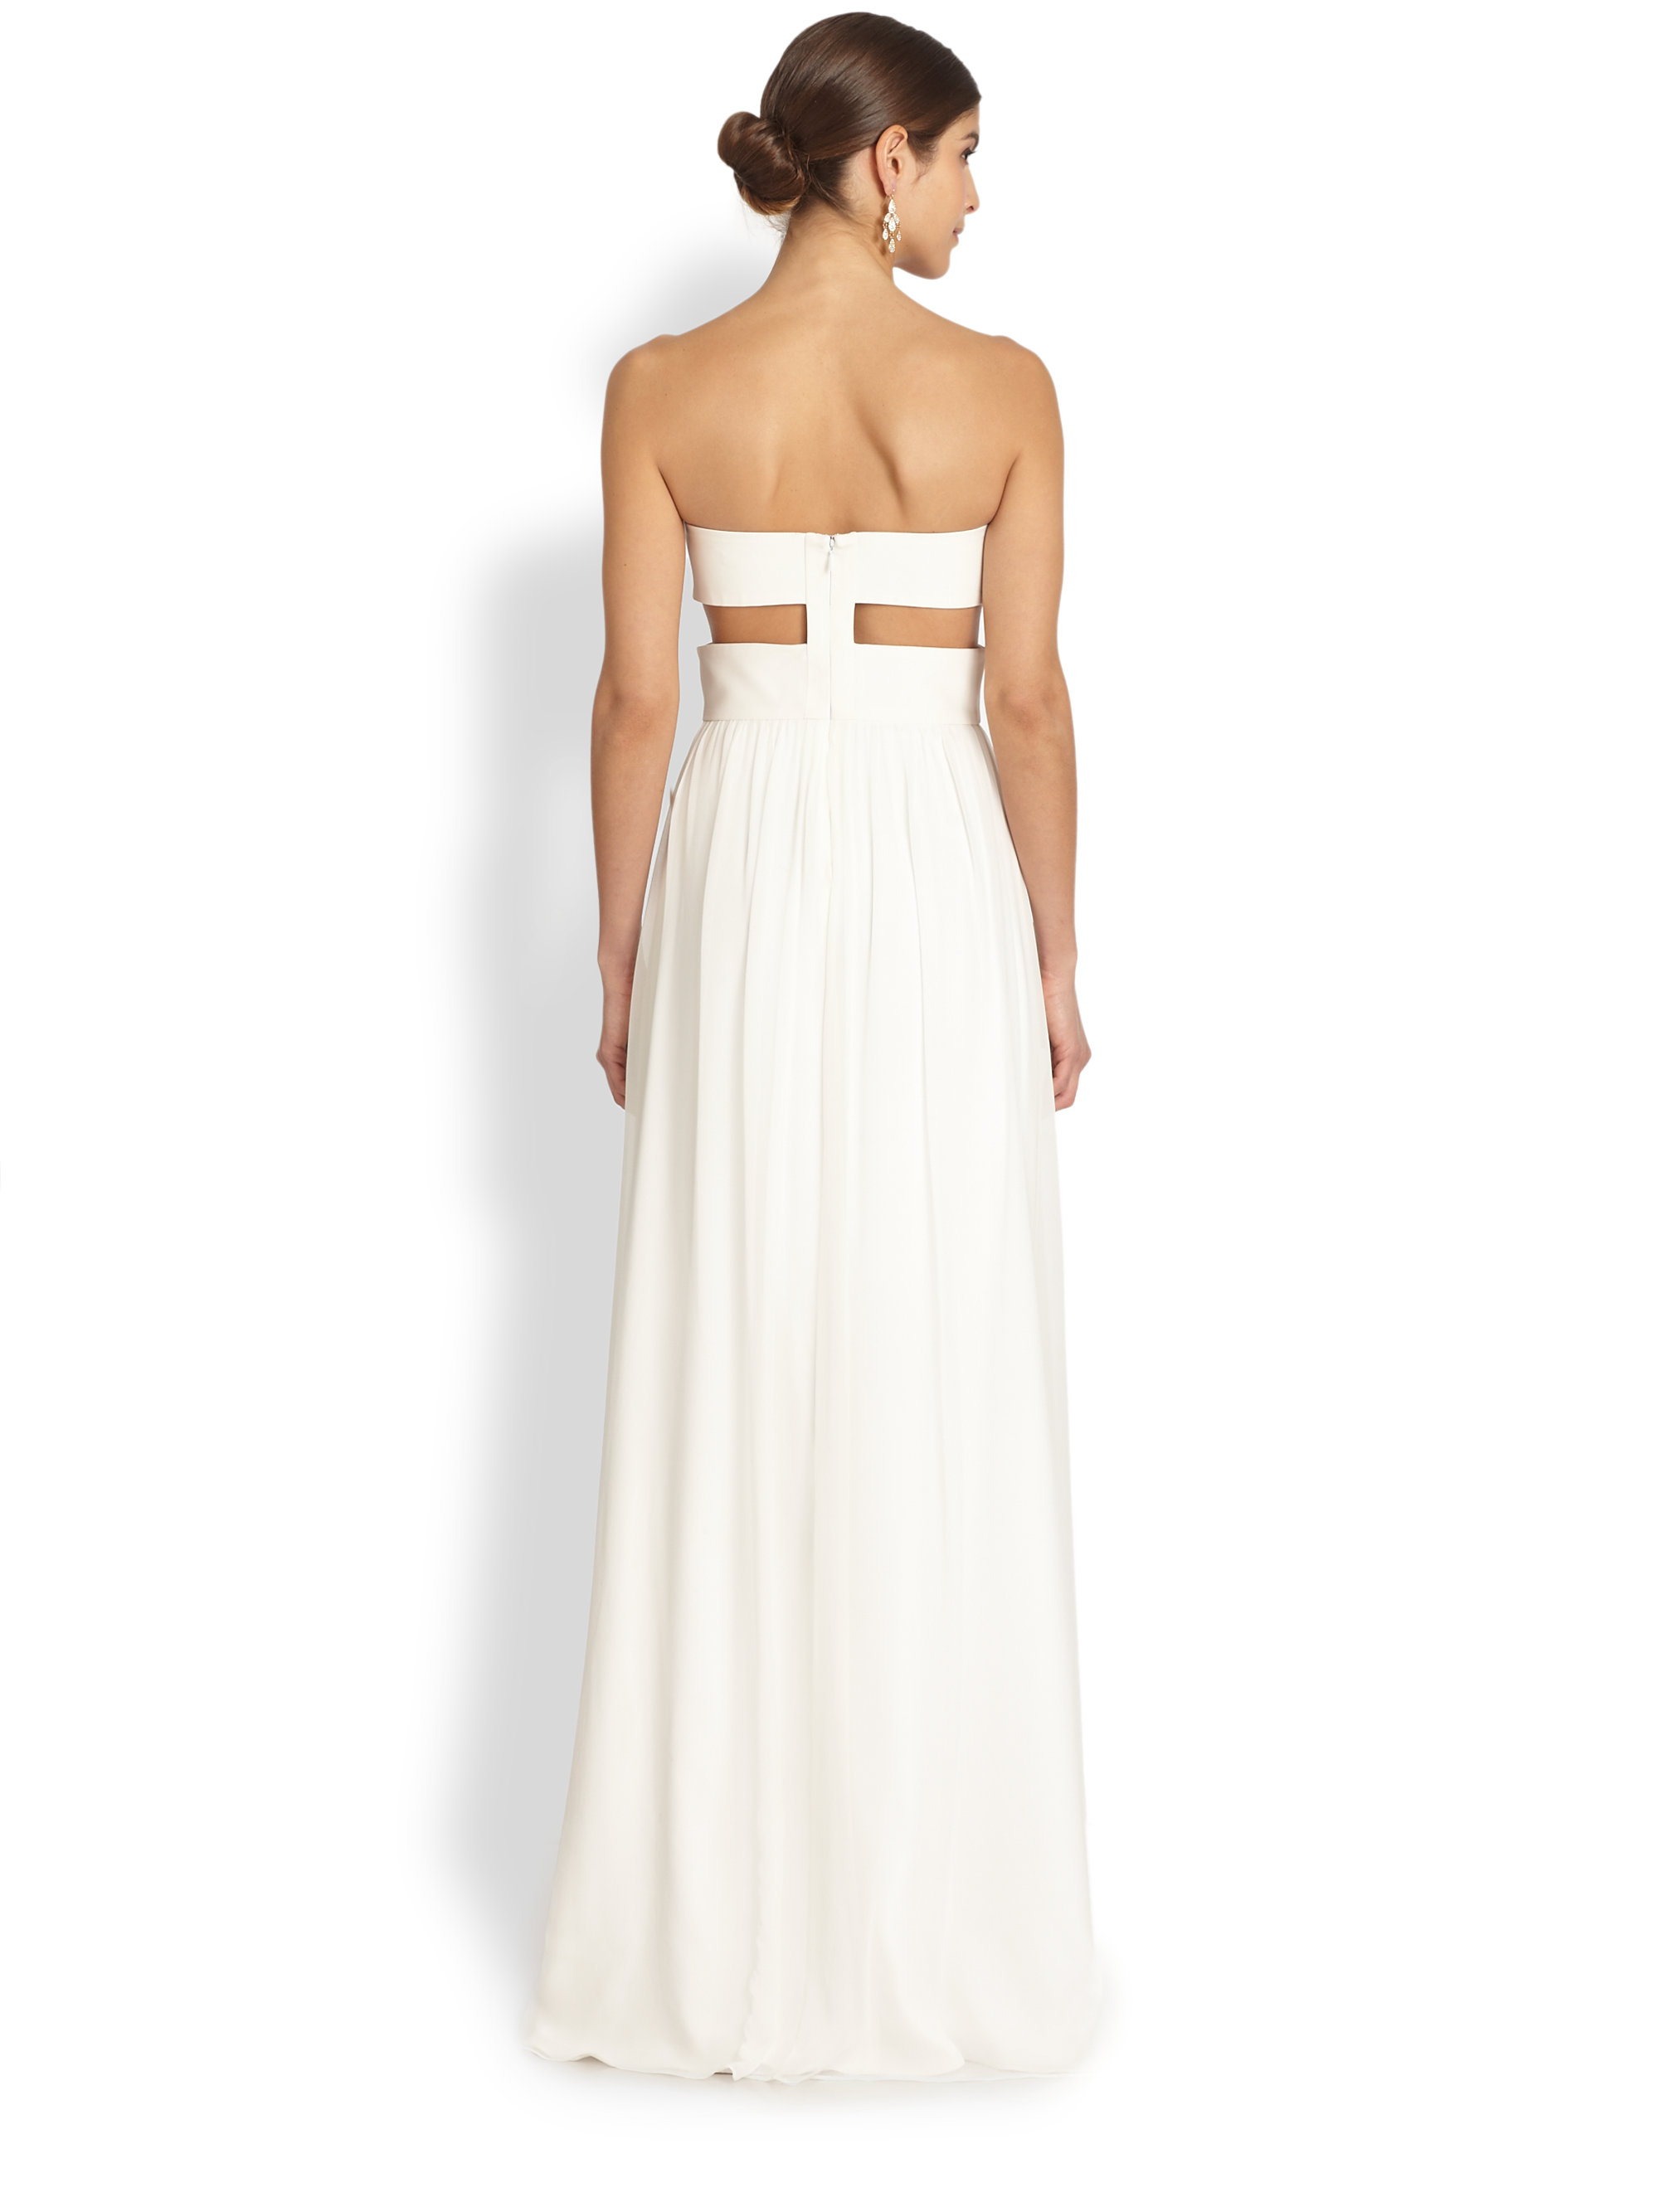 Lyst - Jay Godfrey Radel Strapless Cutout Gown in White